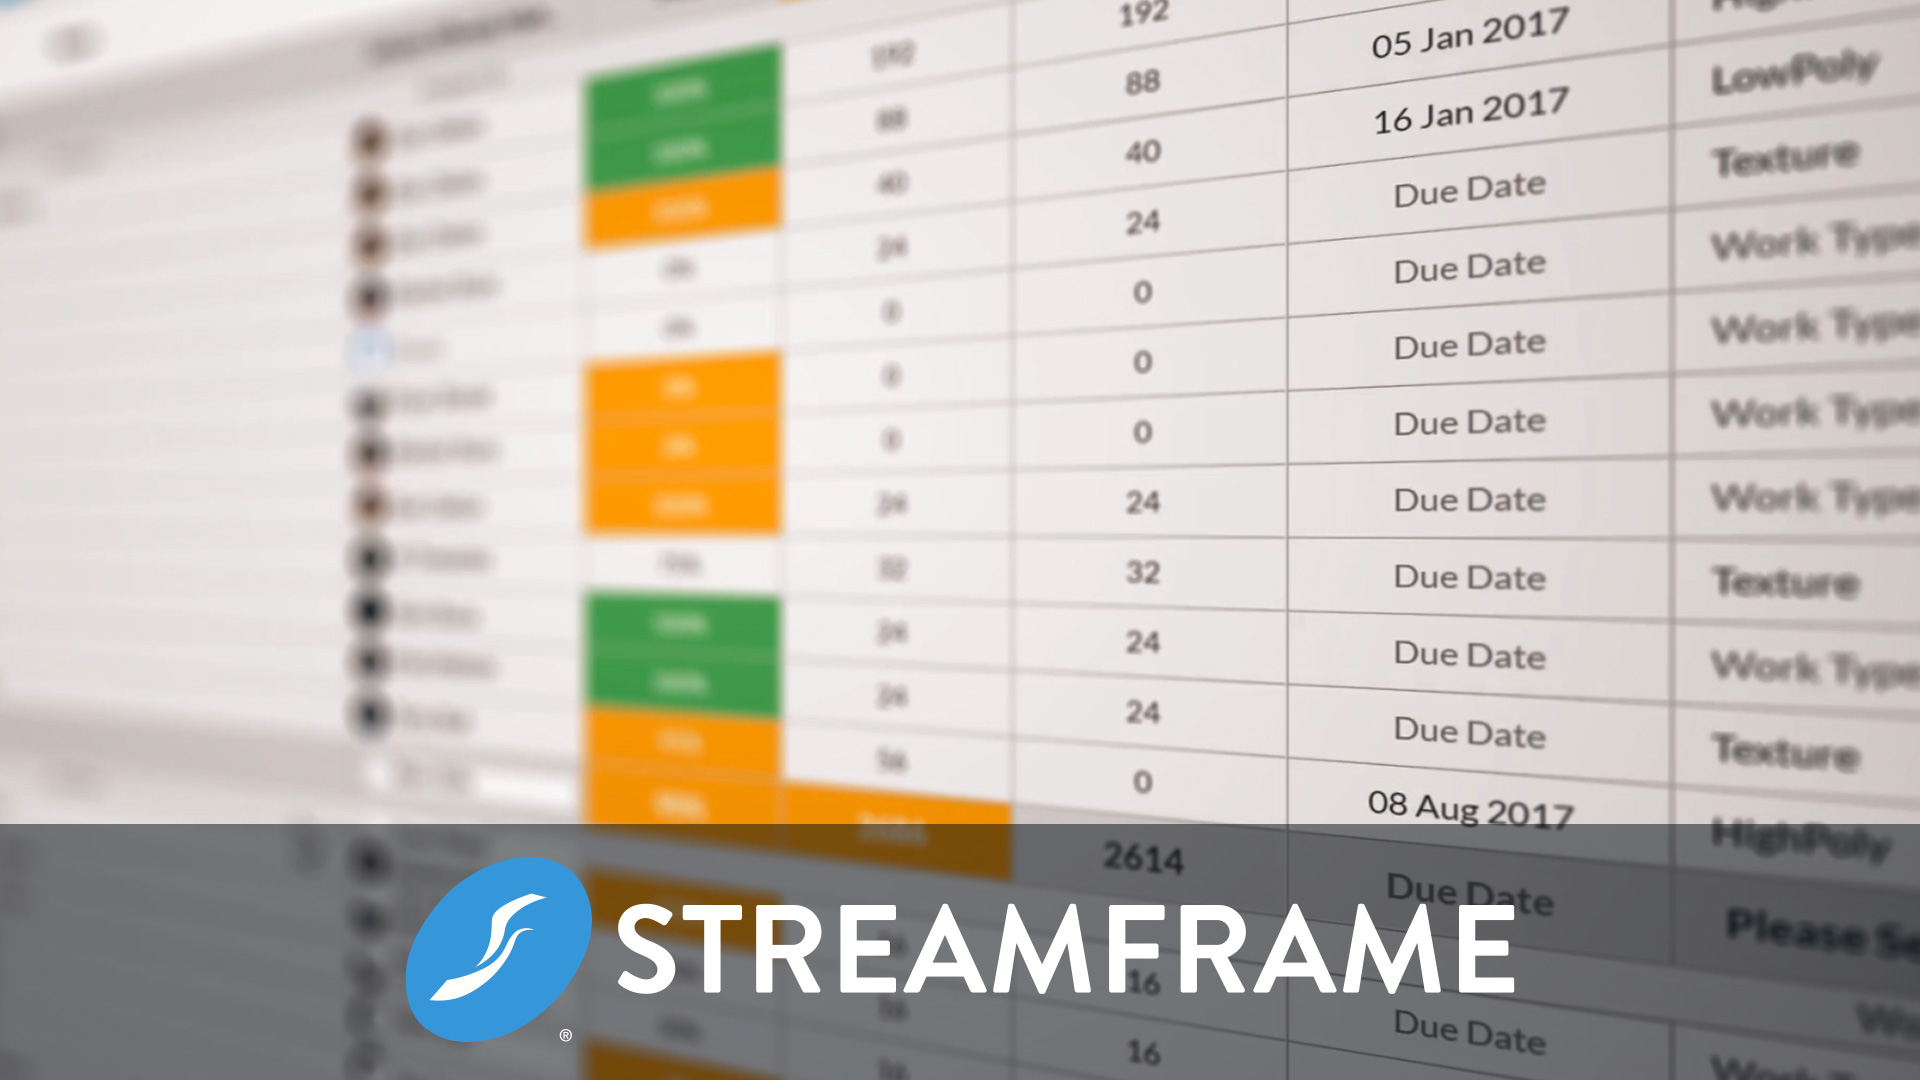 Streamframe - Engineering, Game Tech